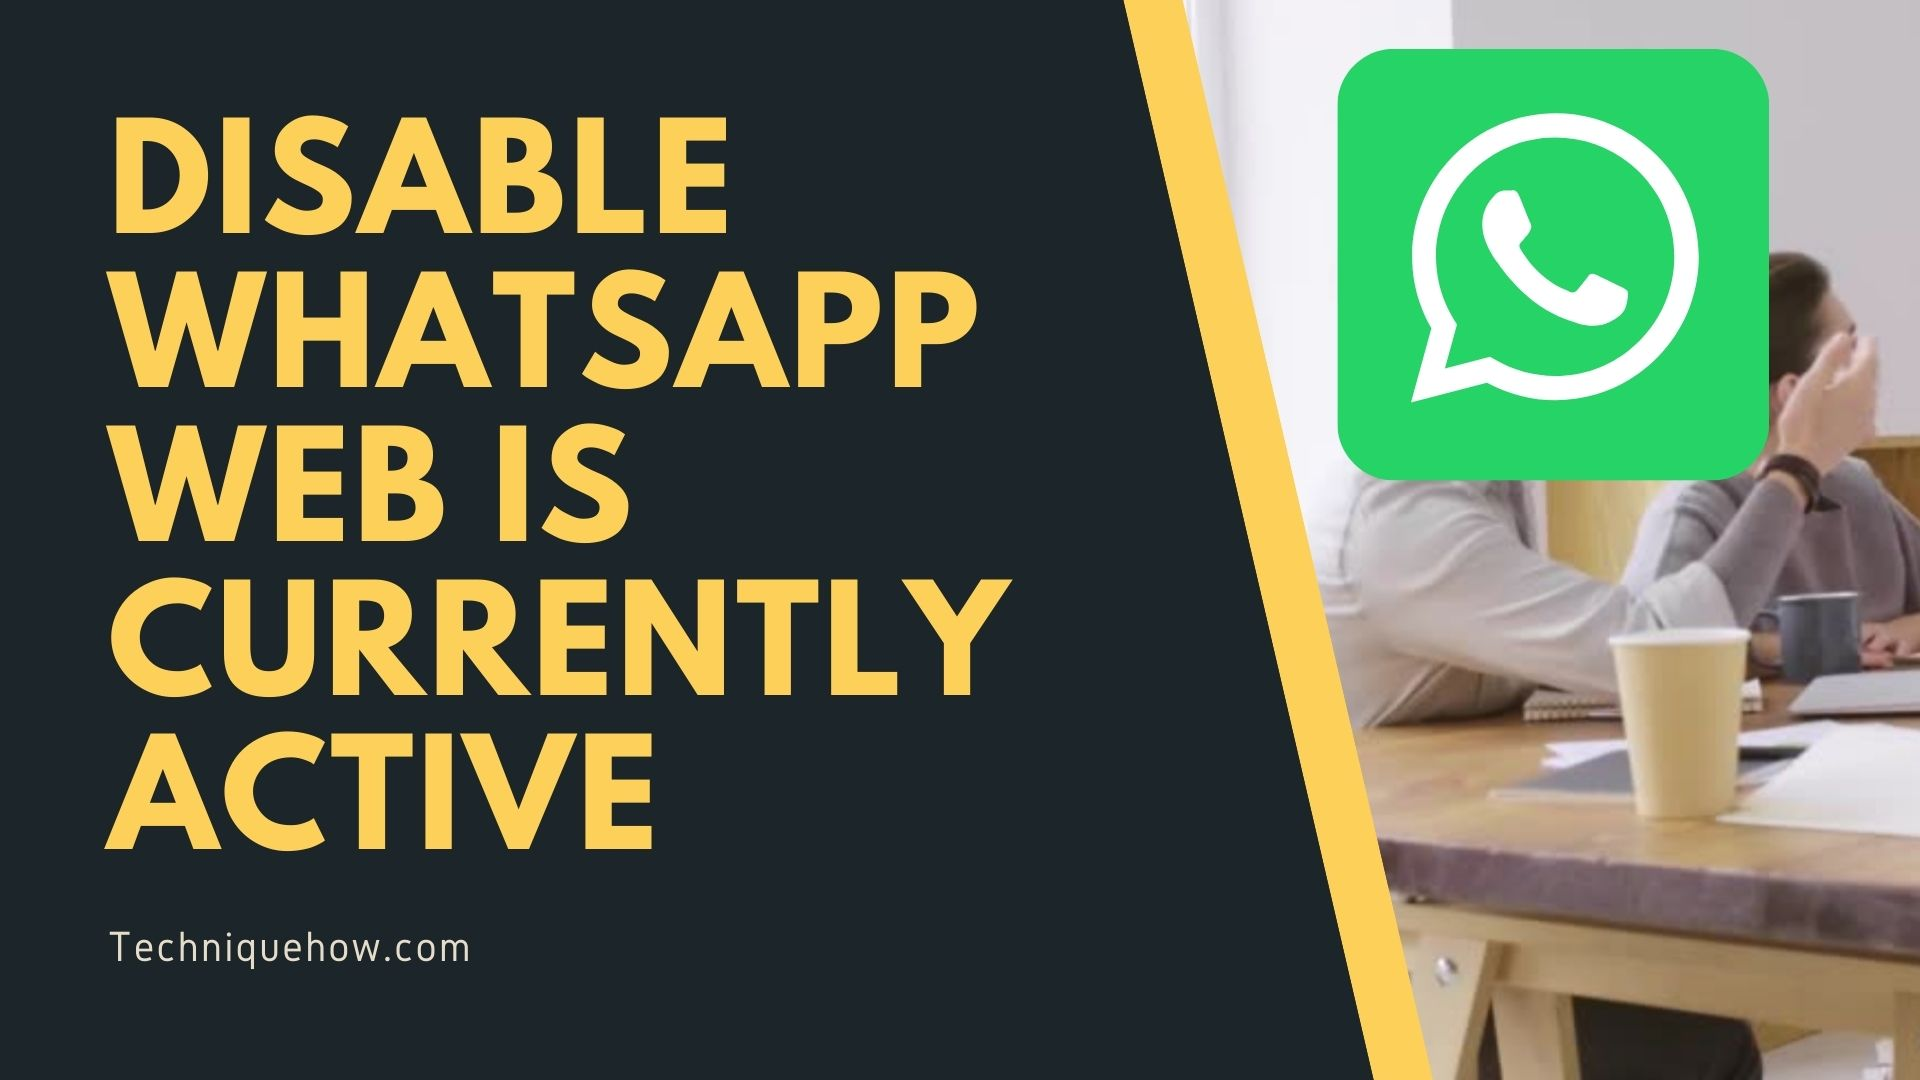 DISABLE WhatsApp web is currently active Notification